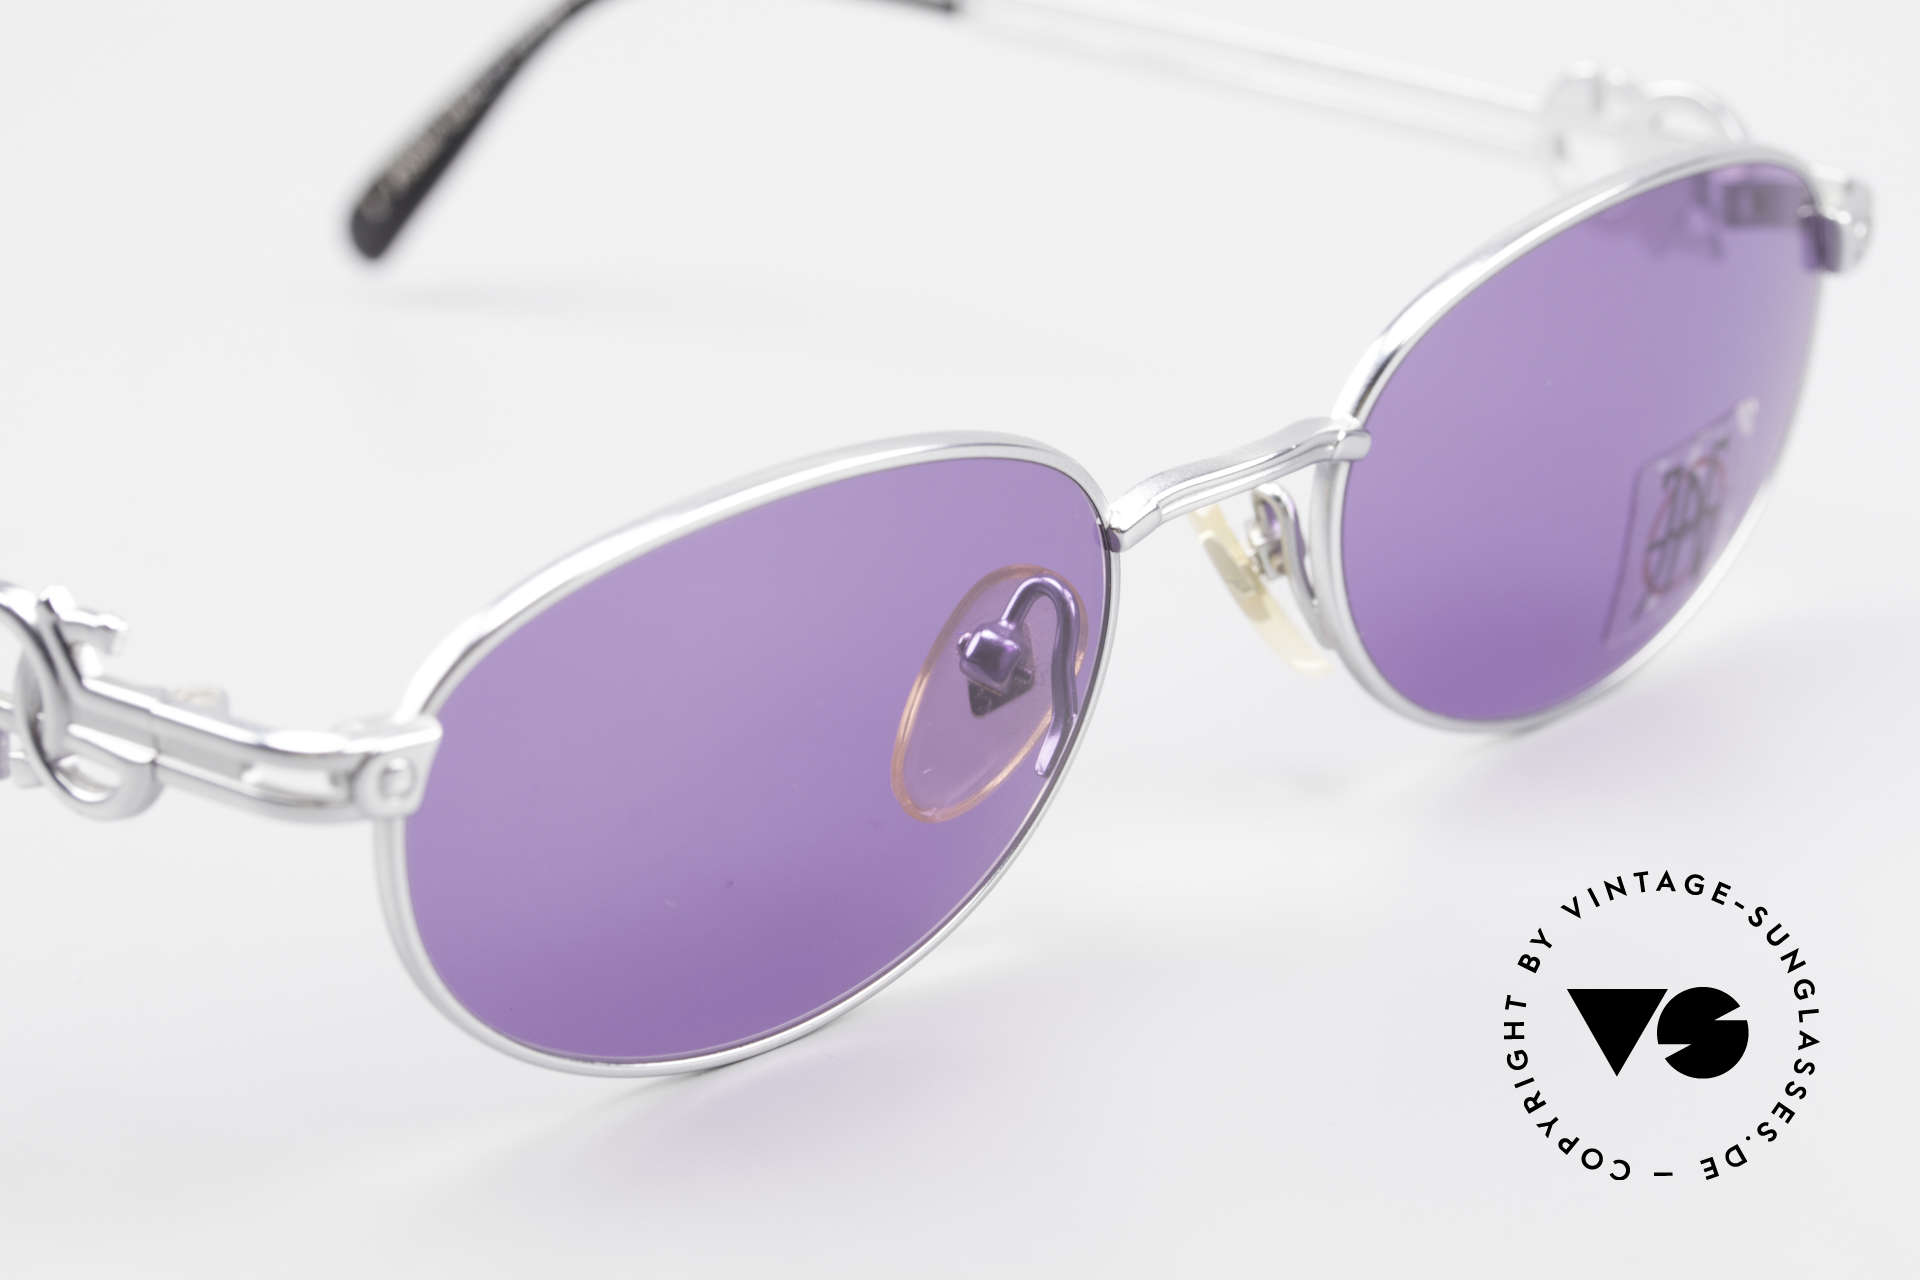 Jean Paul Gaultier 57-5101 Oval JPG Vintage Sunglasses, with purple sun lenses (for 100% UV protection), Made for Men and Women